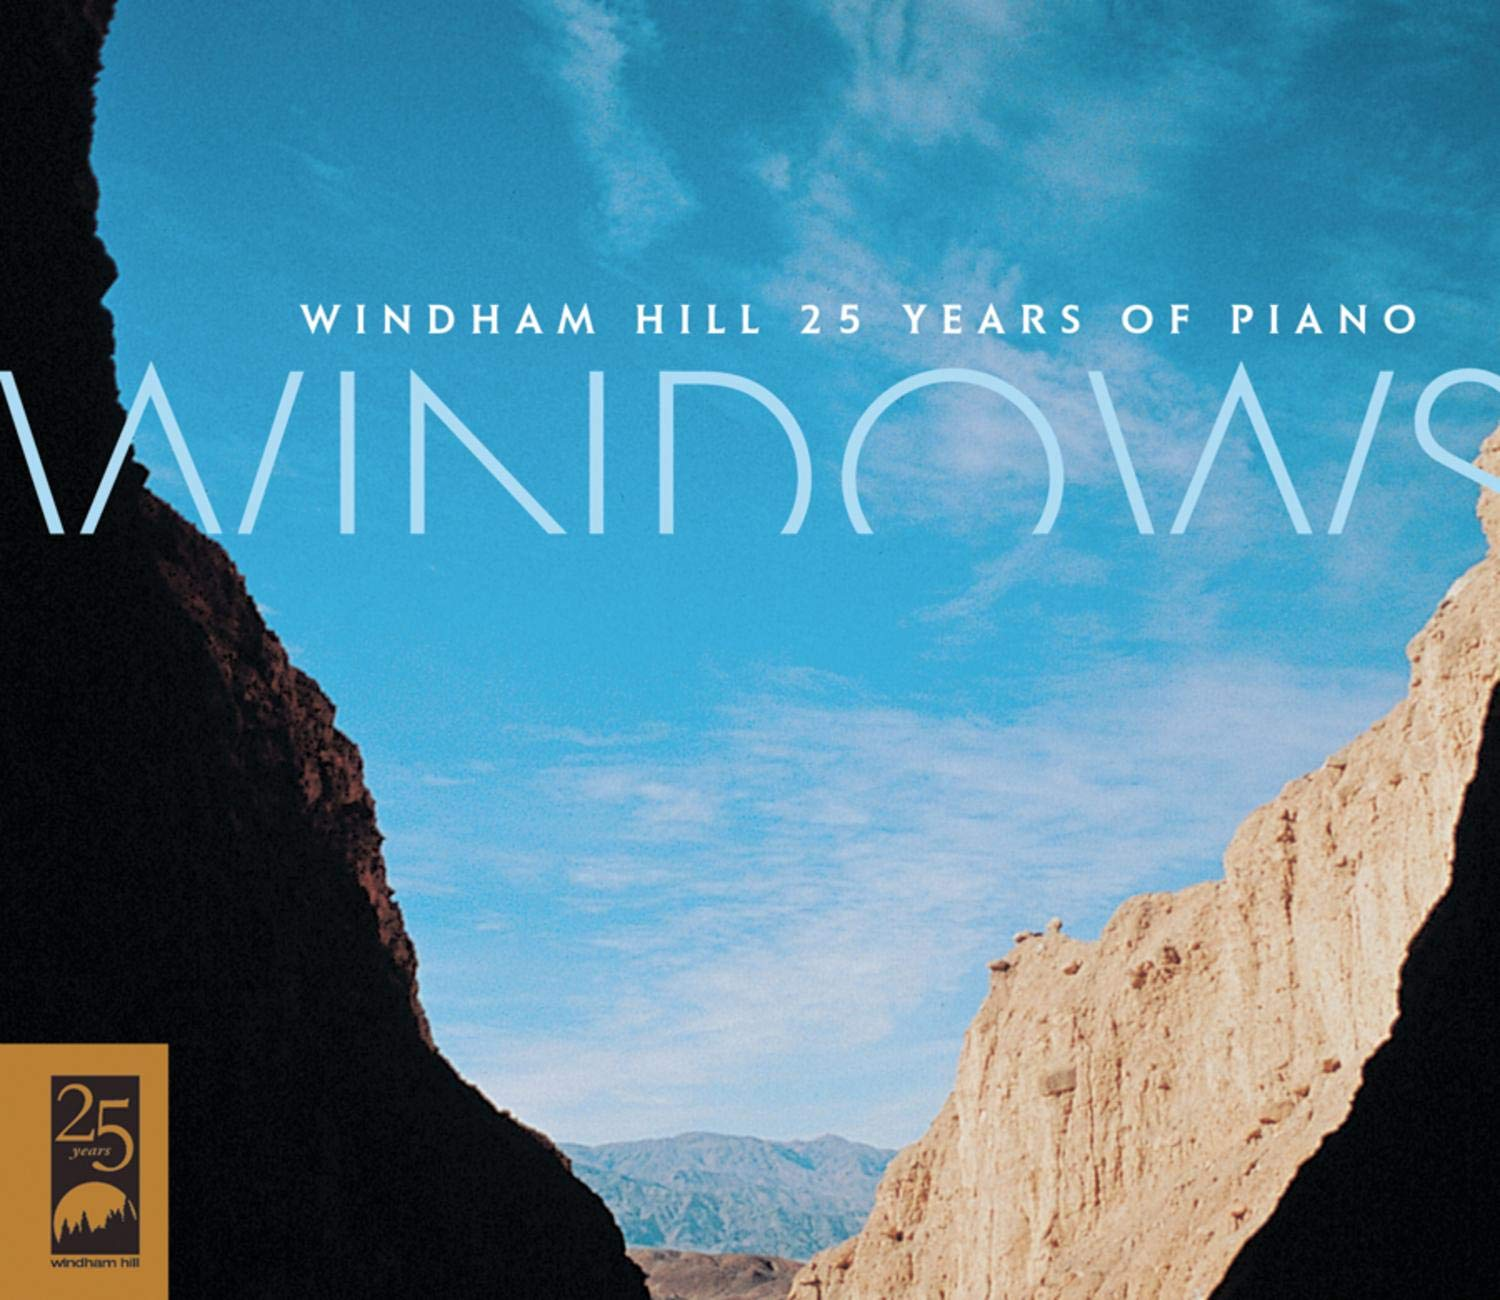 Windows: Windham Hill 25 Years of Piano by Sony Legacy